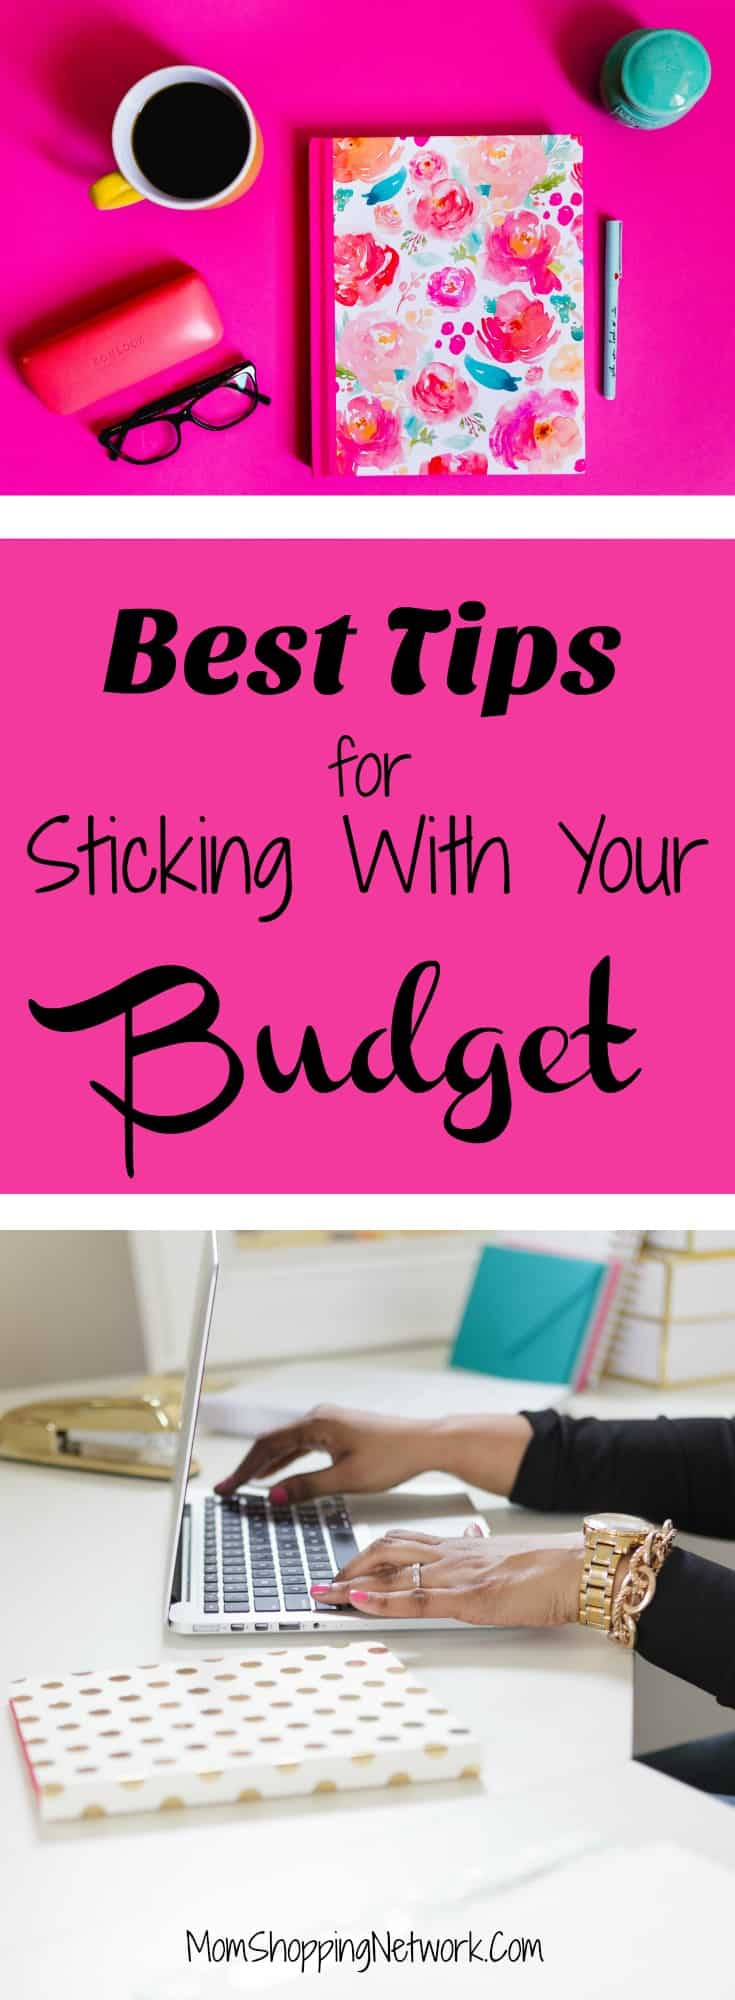 The Best Tips for Sticking with Your Budget #budgettips #financetips #moneytips